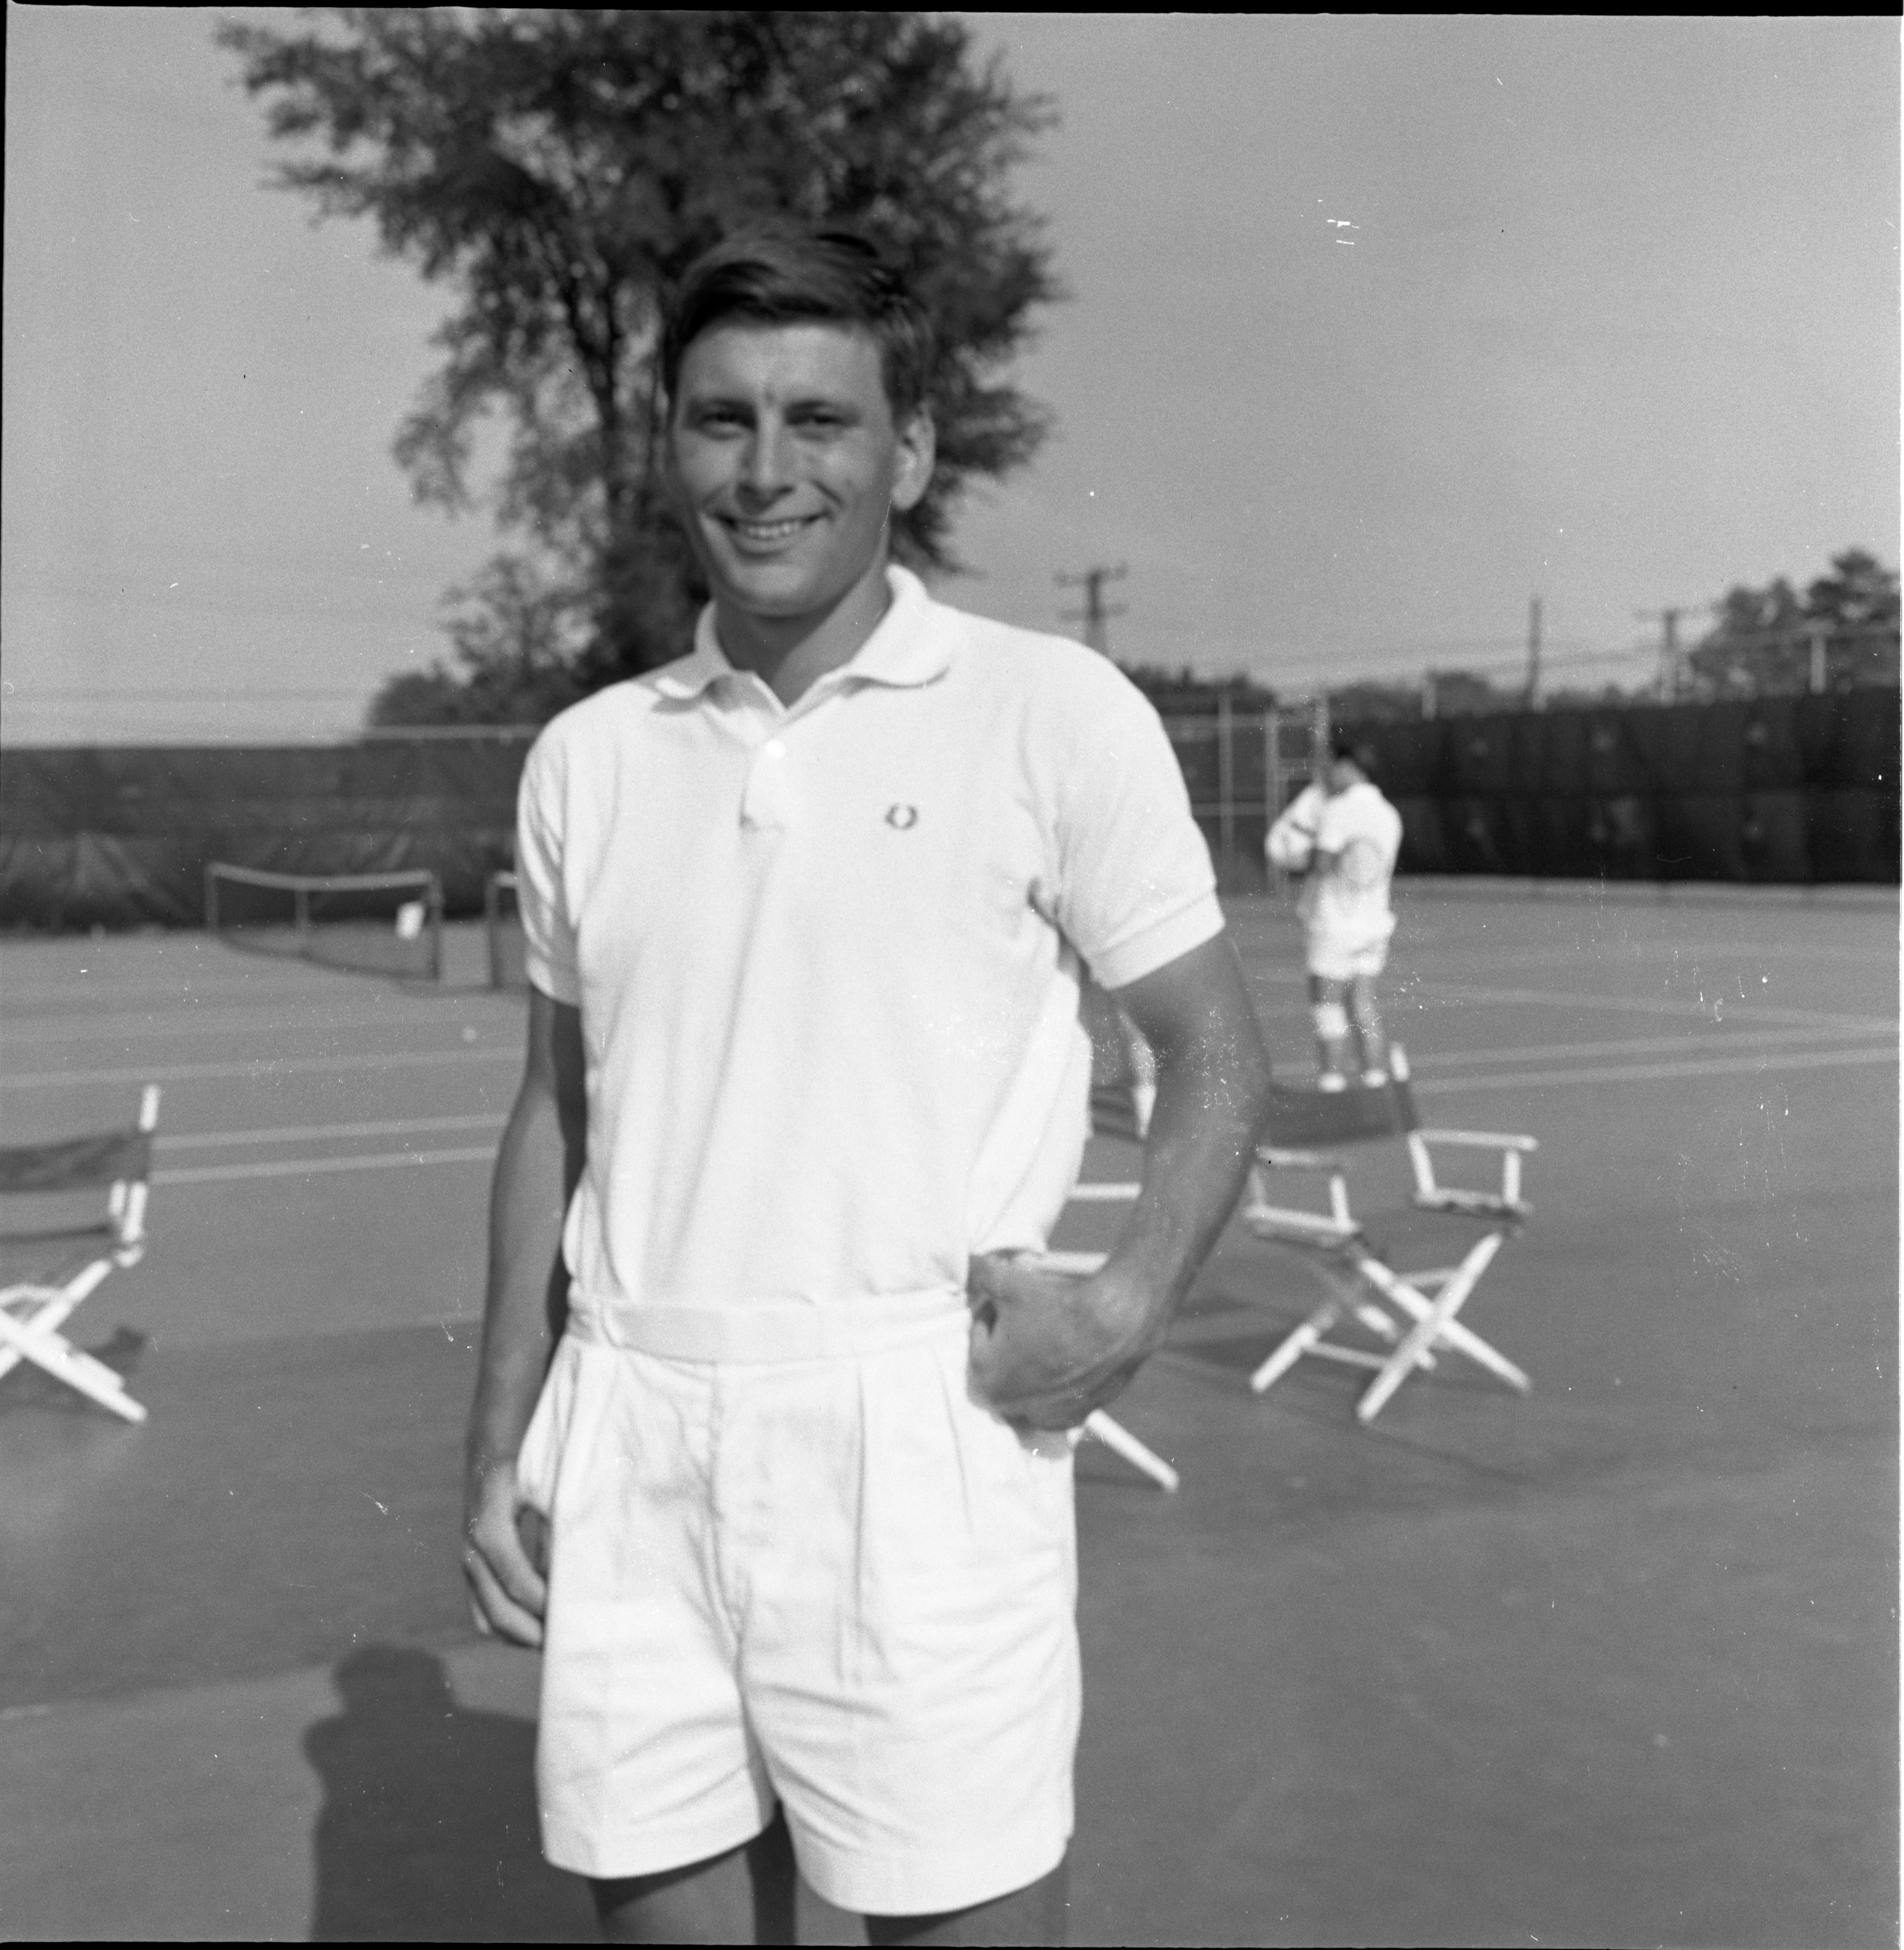 George Smillie - Men's Singles Champ, Ann Arbor City Tennis Tournament - July 1967 image